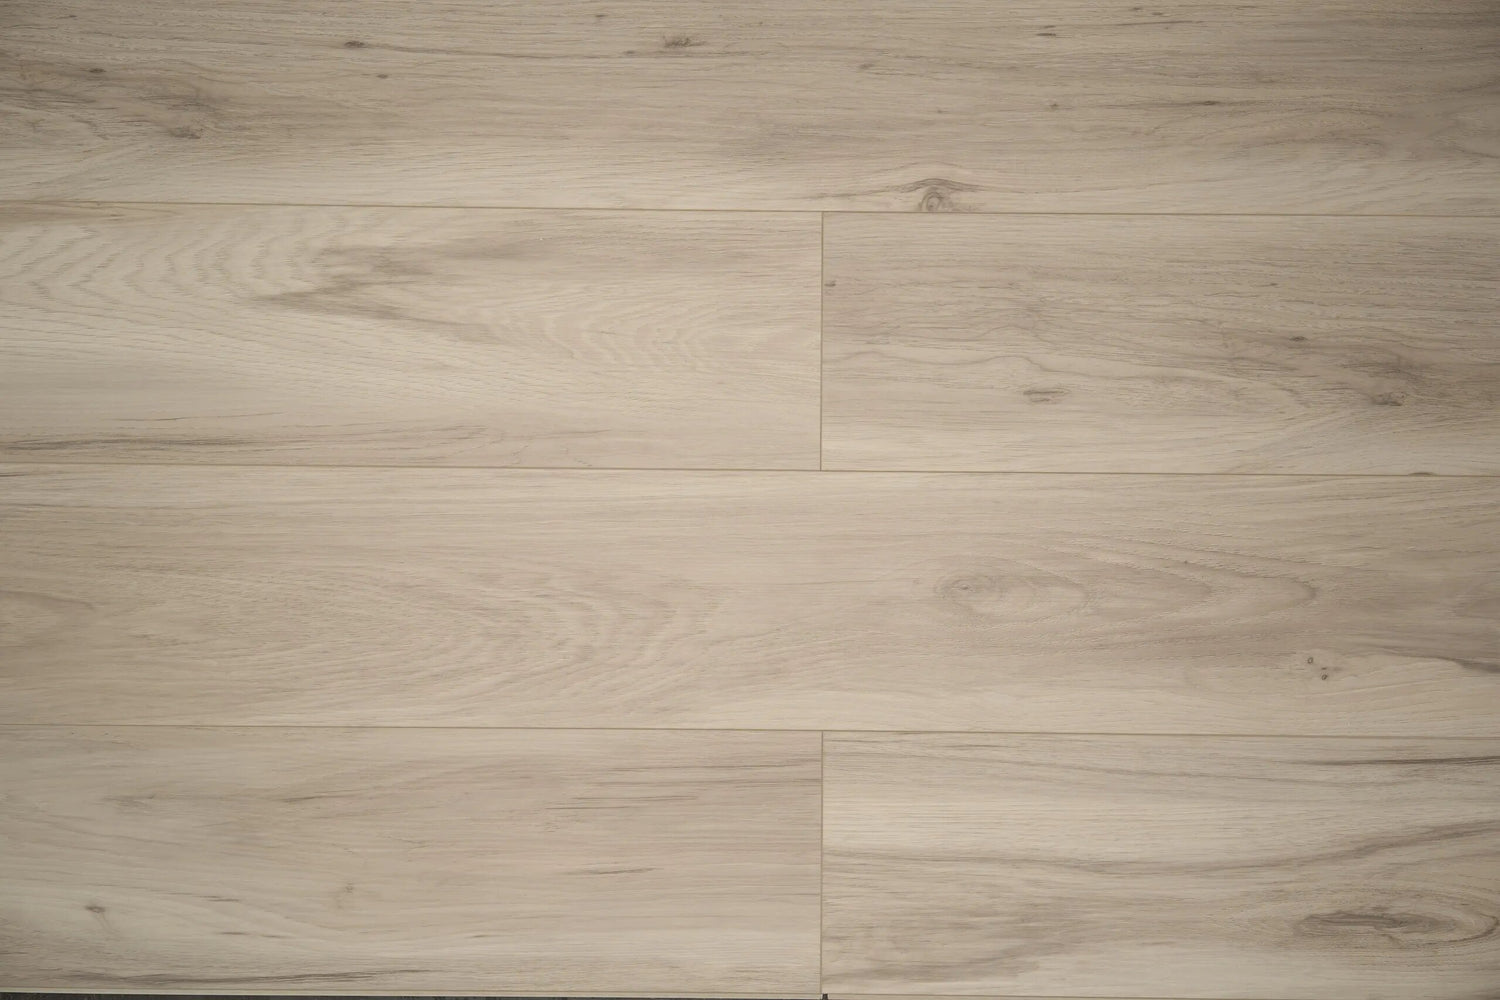 Aquaplus Vinyl Plank - Spadina - 4mm - 7mm (price per sq.ft)